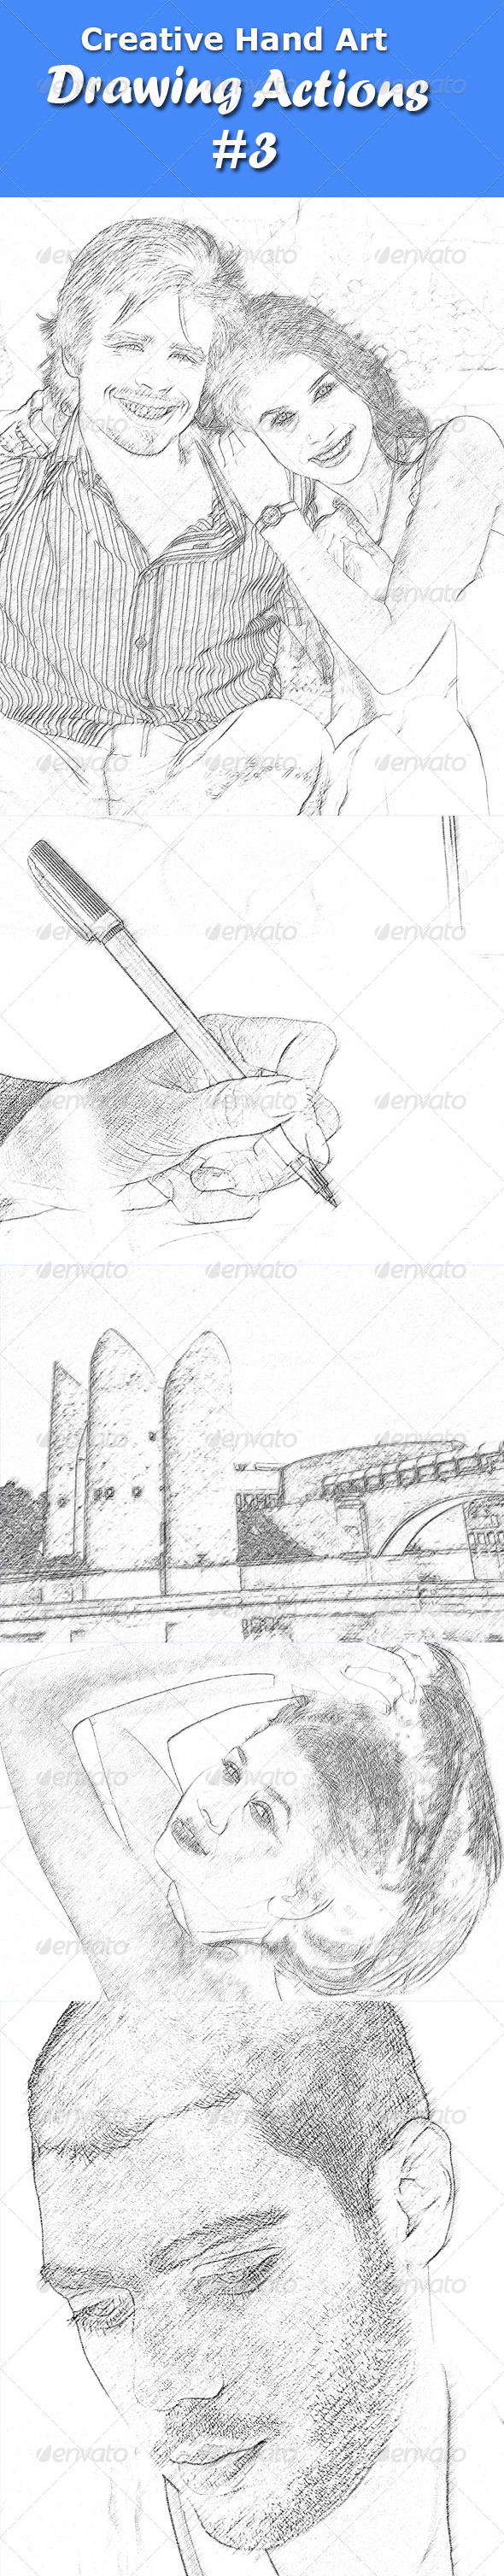 GraphicRiver Creative Hand Art Drawing 3 5557559